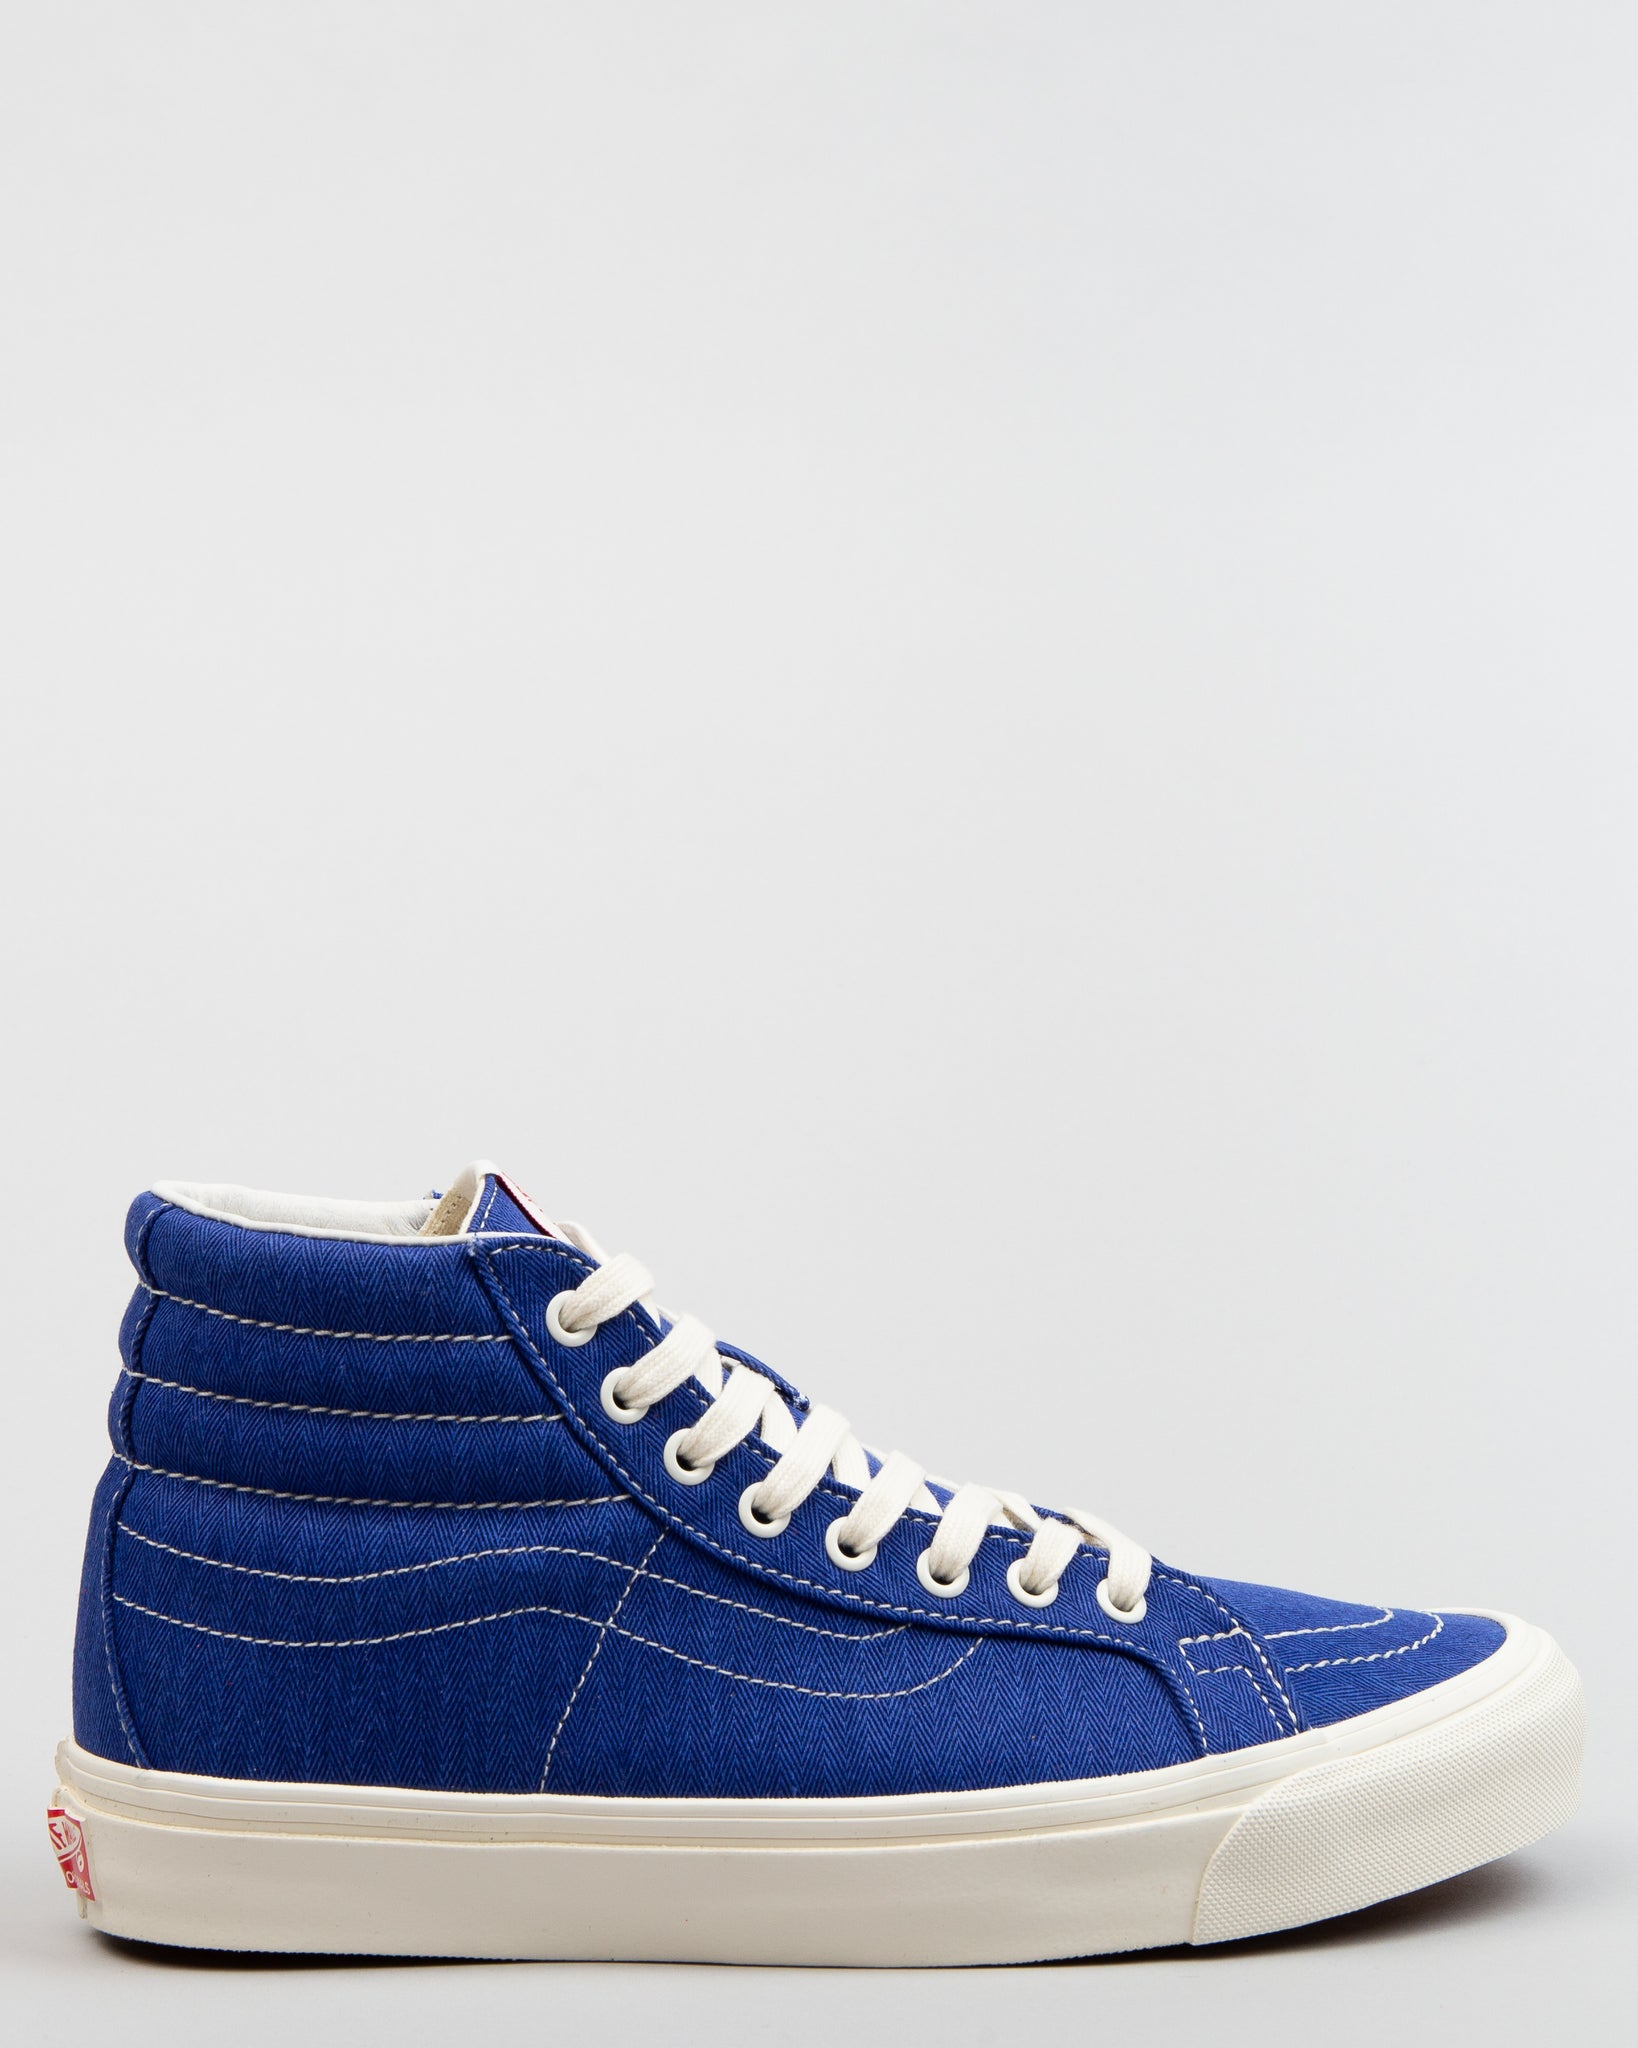 OG SK8-HI LX (Herringbone Canvas) French Blue